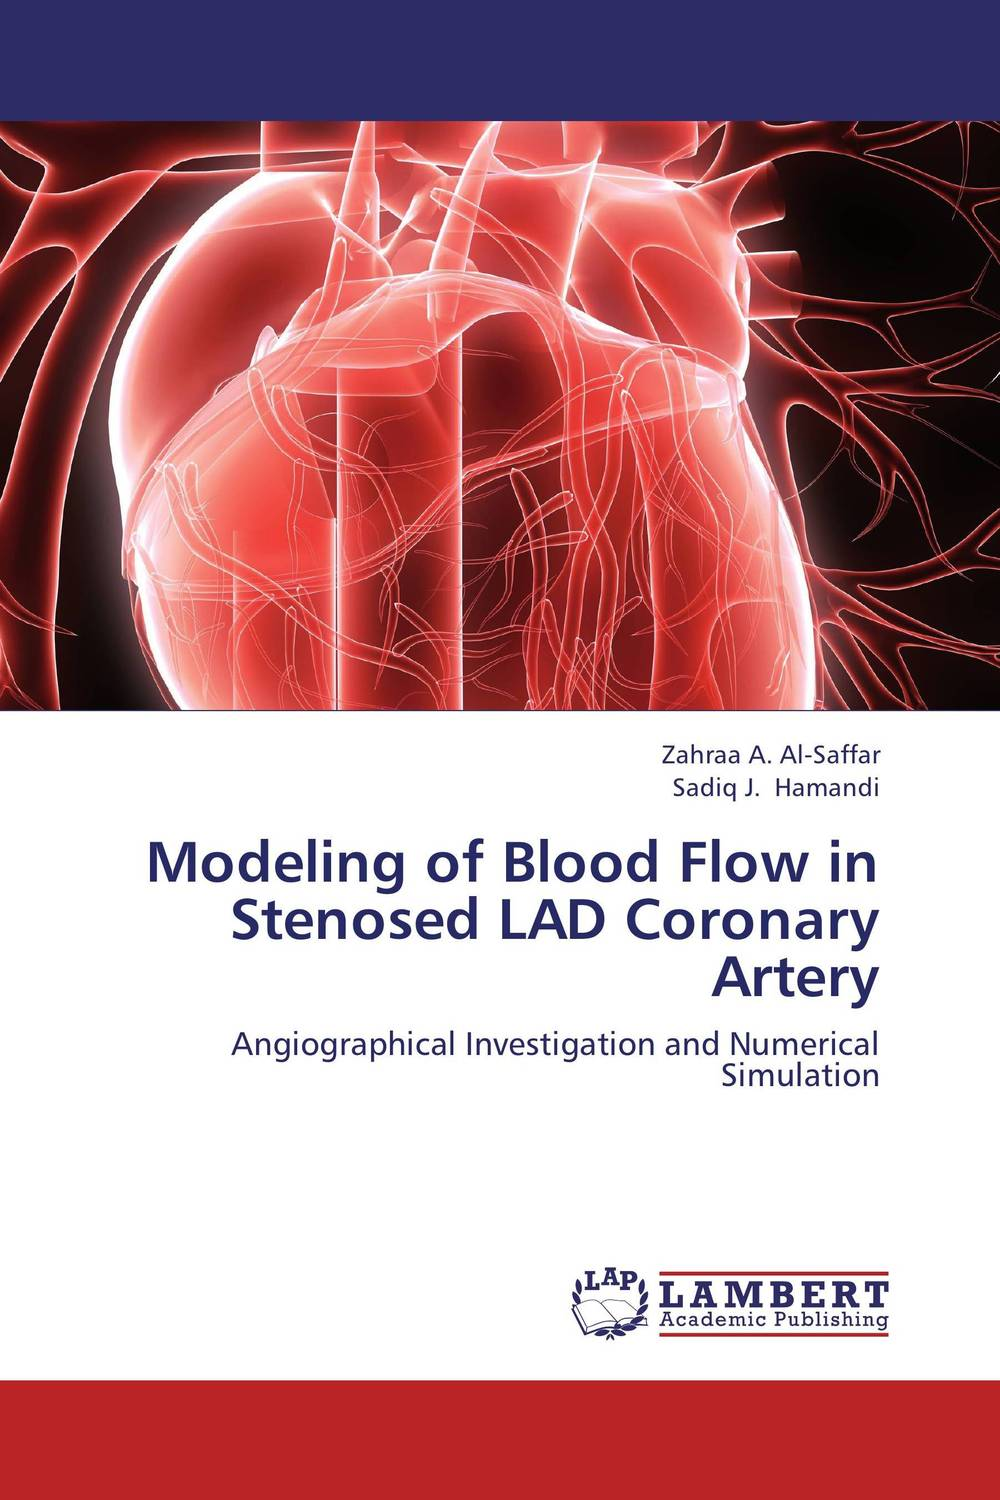 Modeling of Blood Flow in Stenosed LAD Coronary Artery infant artery puncture arm baby artery puncture arm training model